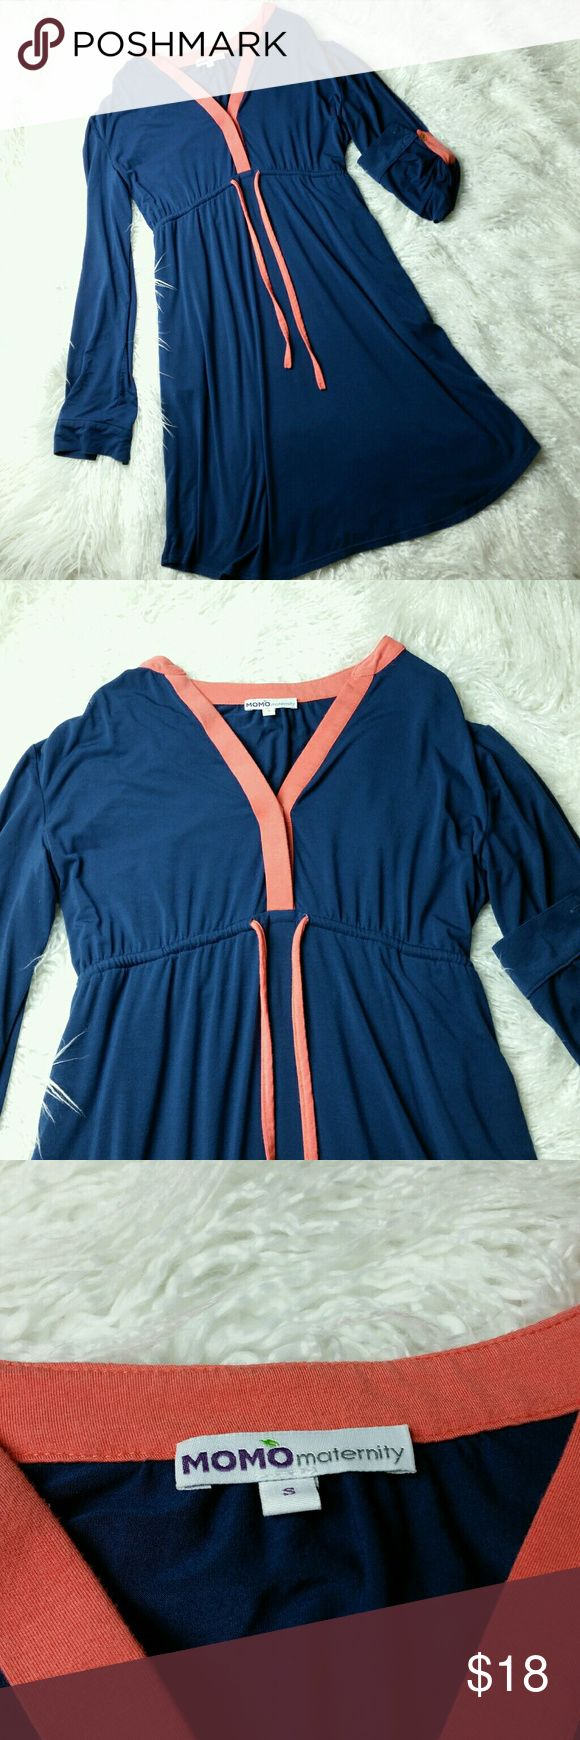 """💕 Momo Maternity Dress Sz Small Momo Maternity cute blue/orange dress  Size Small, stretchy, armpit to armpit measures 18"""", lenght 34.5"""" Gently used in great condition no flaws Momo Maternity Dresses"""